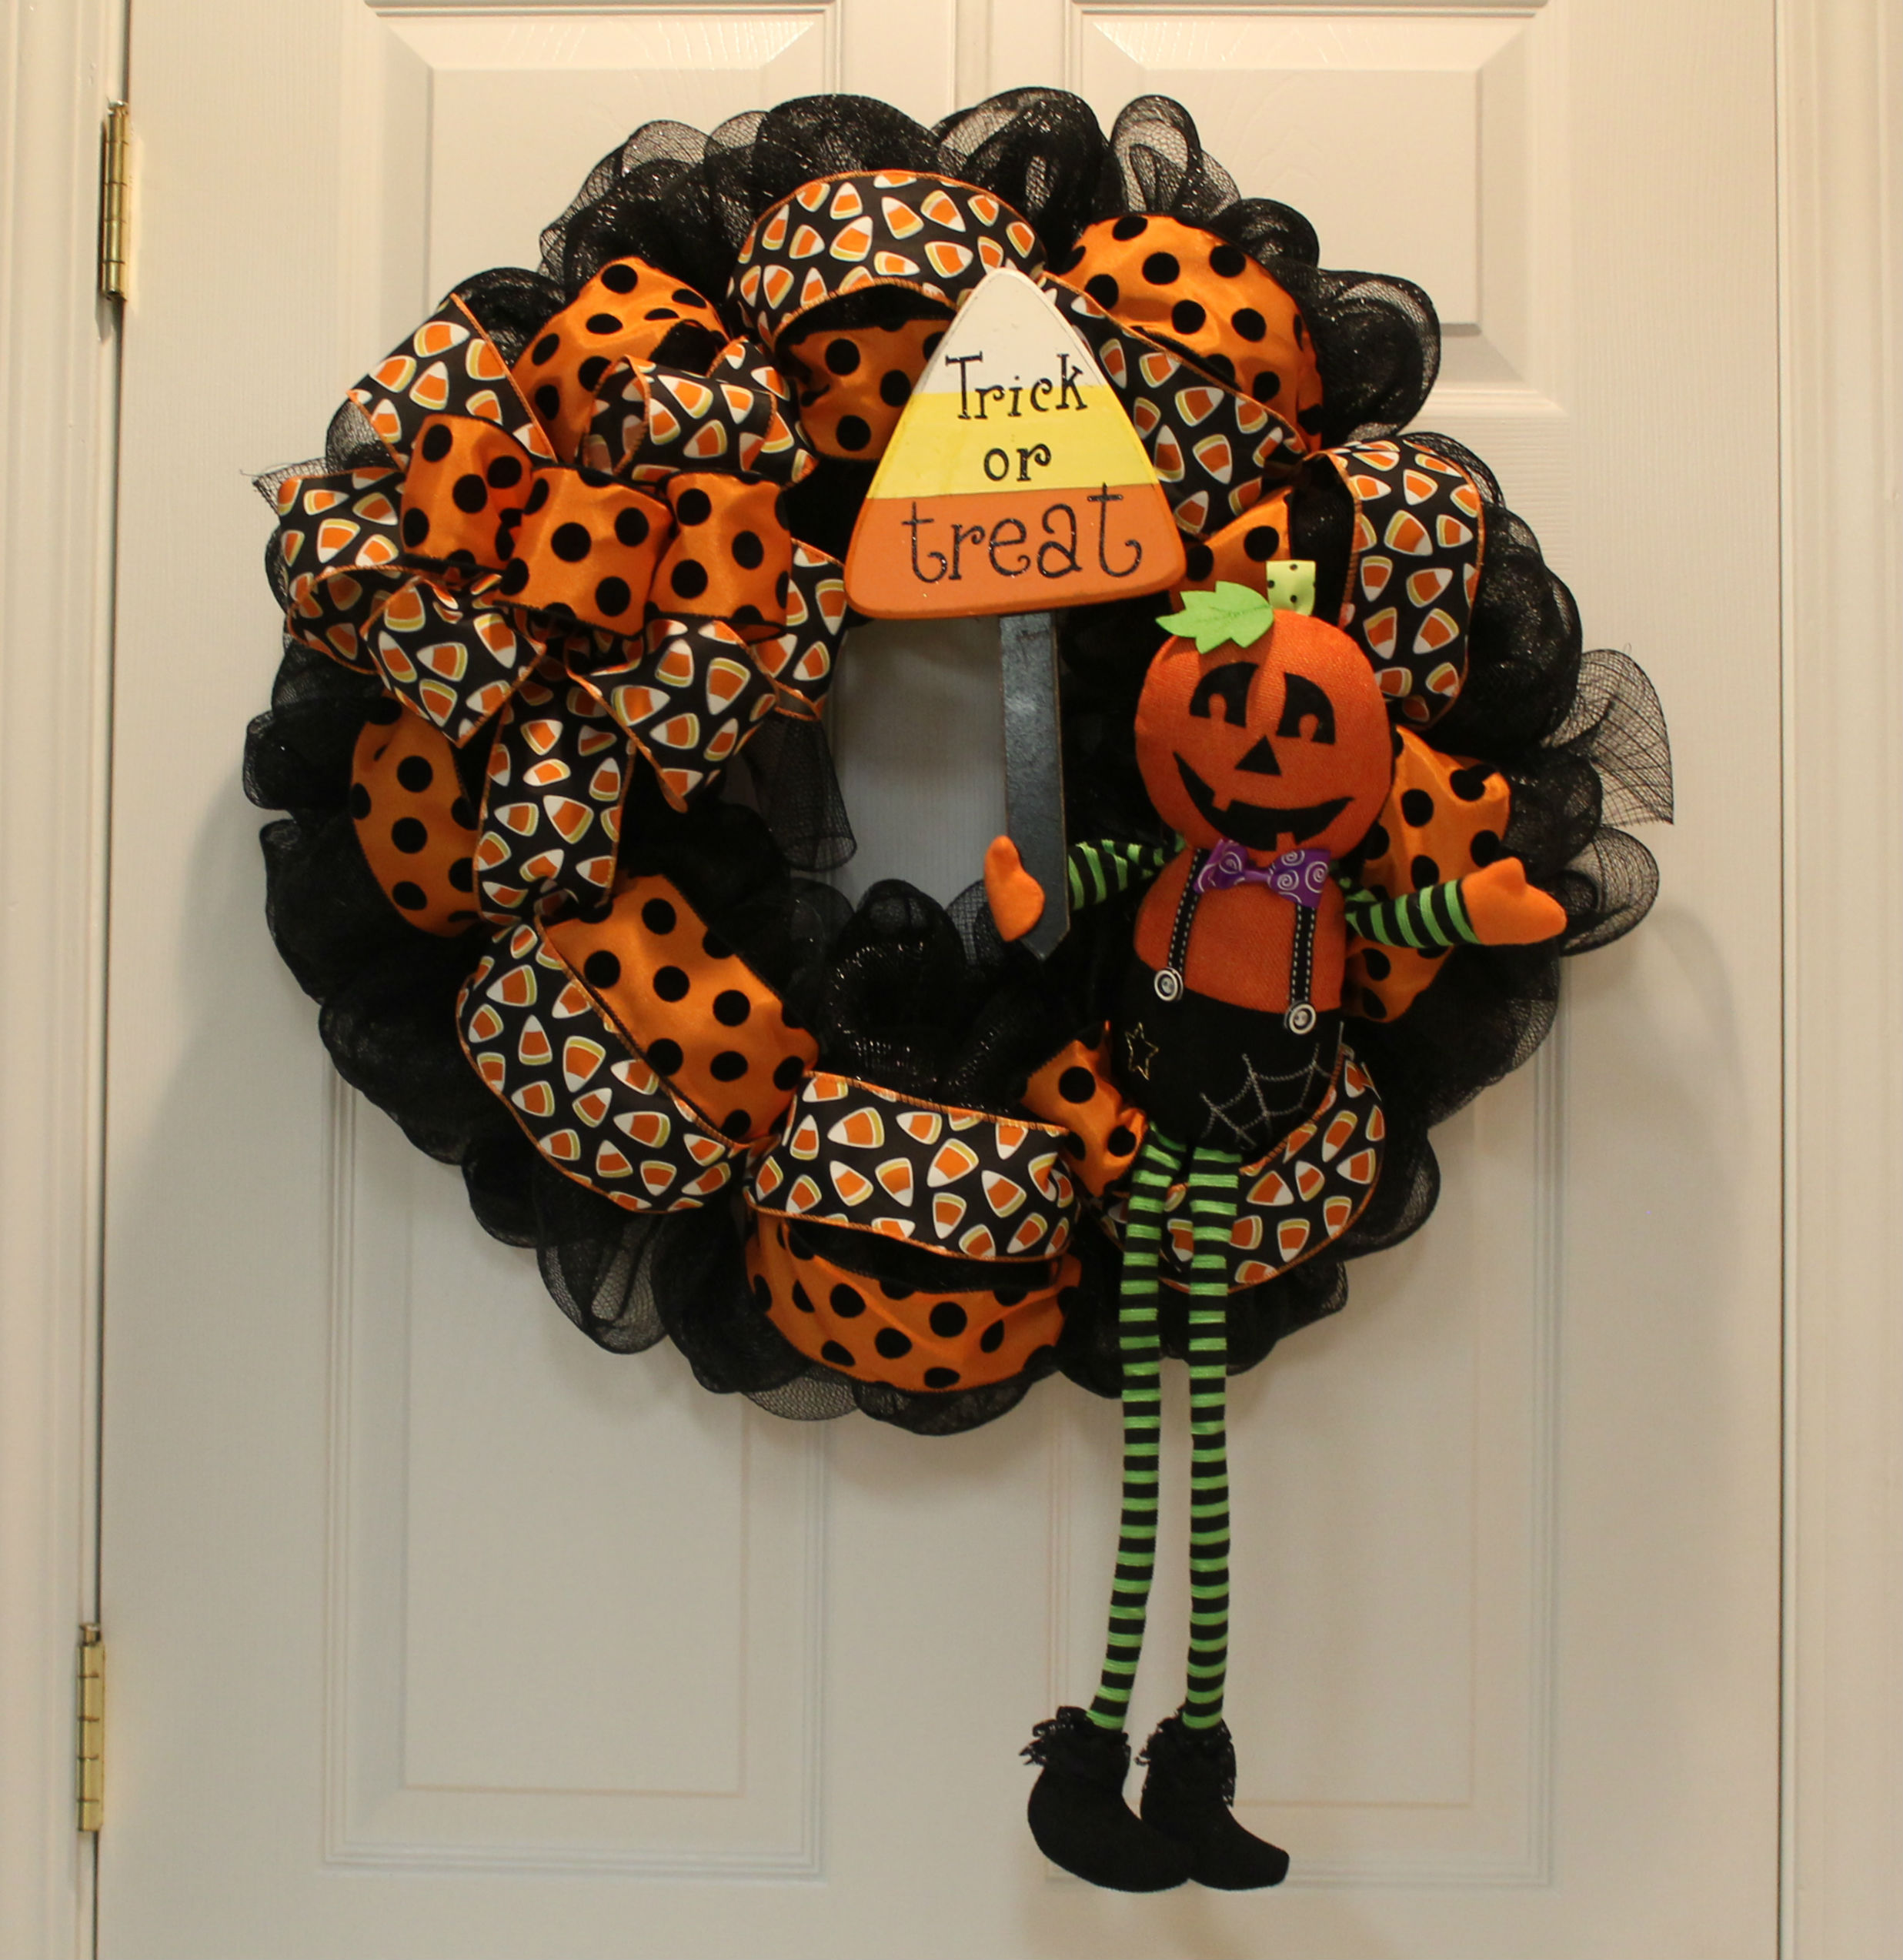 Diy halloween wreath - A Diy Halloween Mesh Wreath That Even The Most Inexperienced Crafter Would Master Give It A Try And Add Halloween Whimsy To Your Door